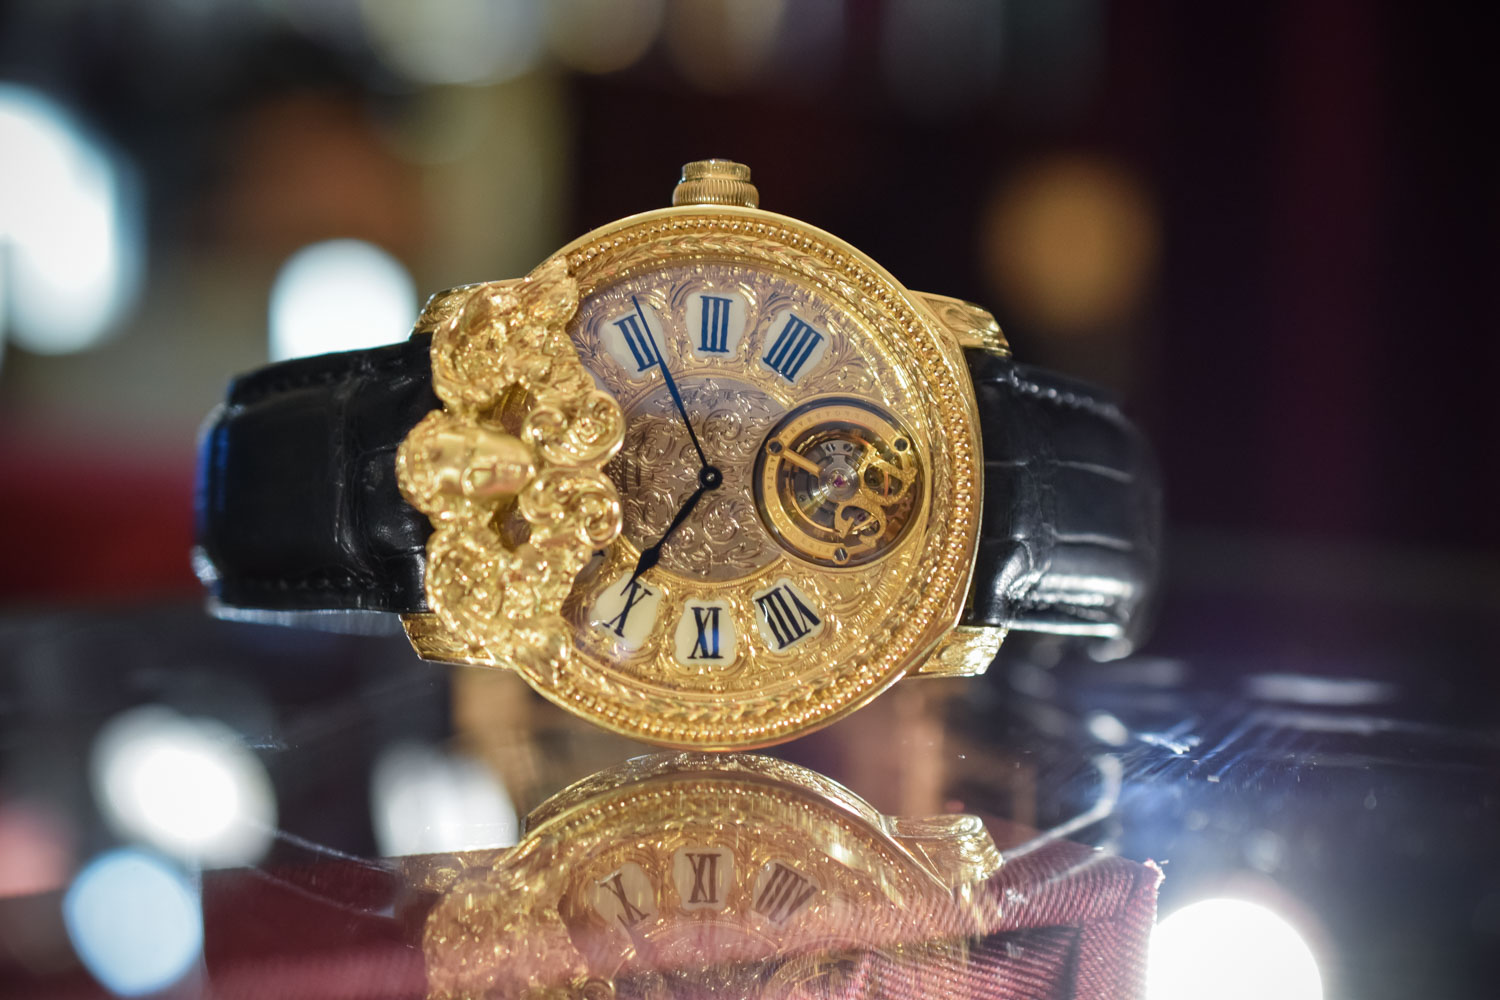 d294ffb3ed94 Dolce & Gabbana Makes Its Debuts In The World of Haute Horlogerie ...